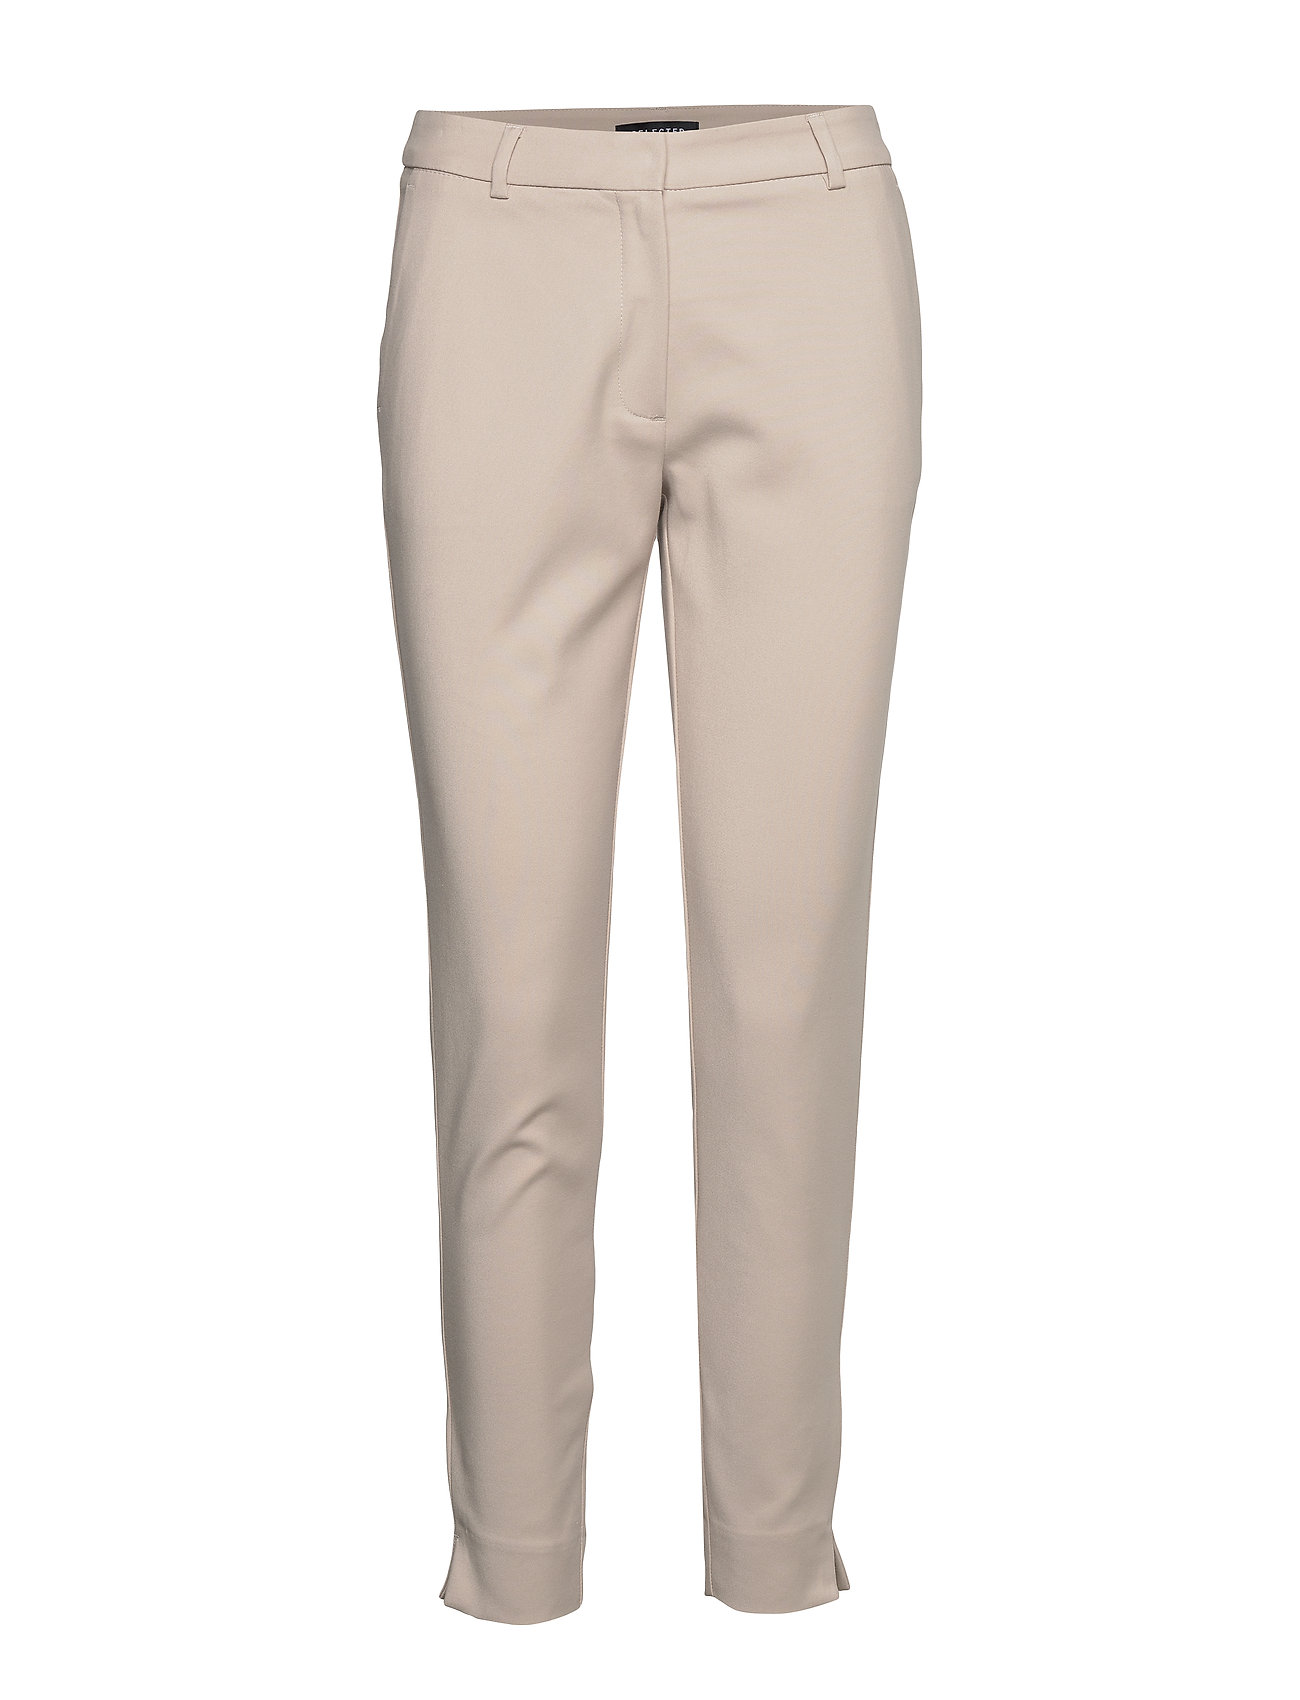 Selected Femme SLFMUSE FIE CROPPED MW PANT- DOVE B - DOVE